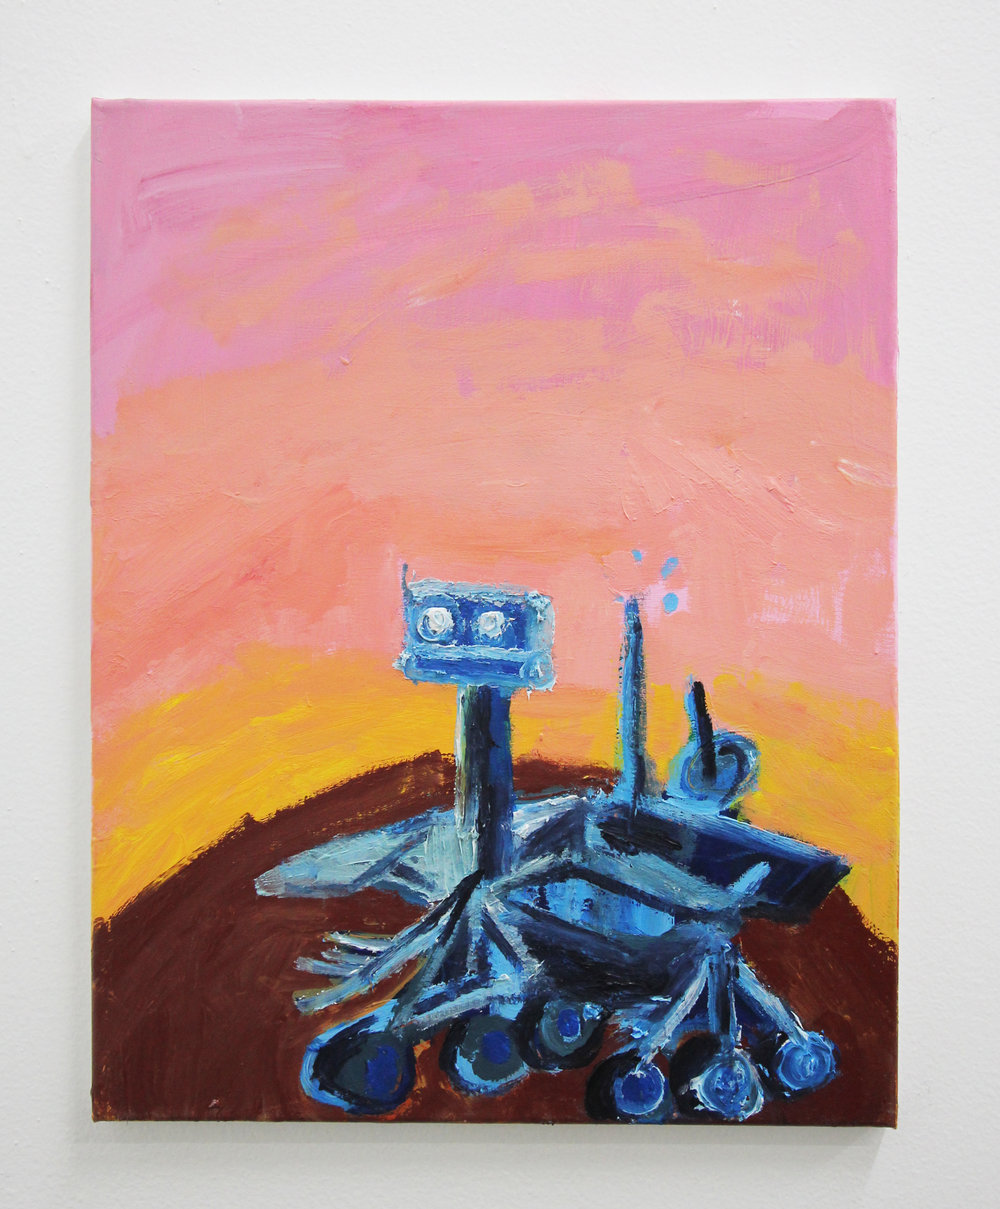 Short Circuit 16x20in Acrylic on canvas 2018